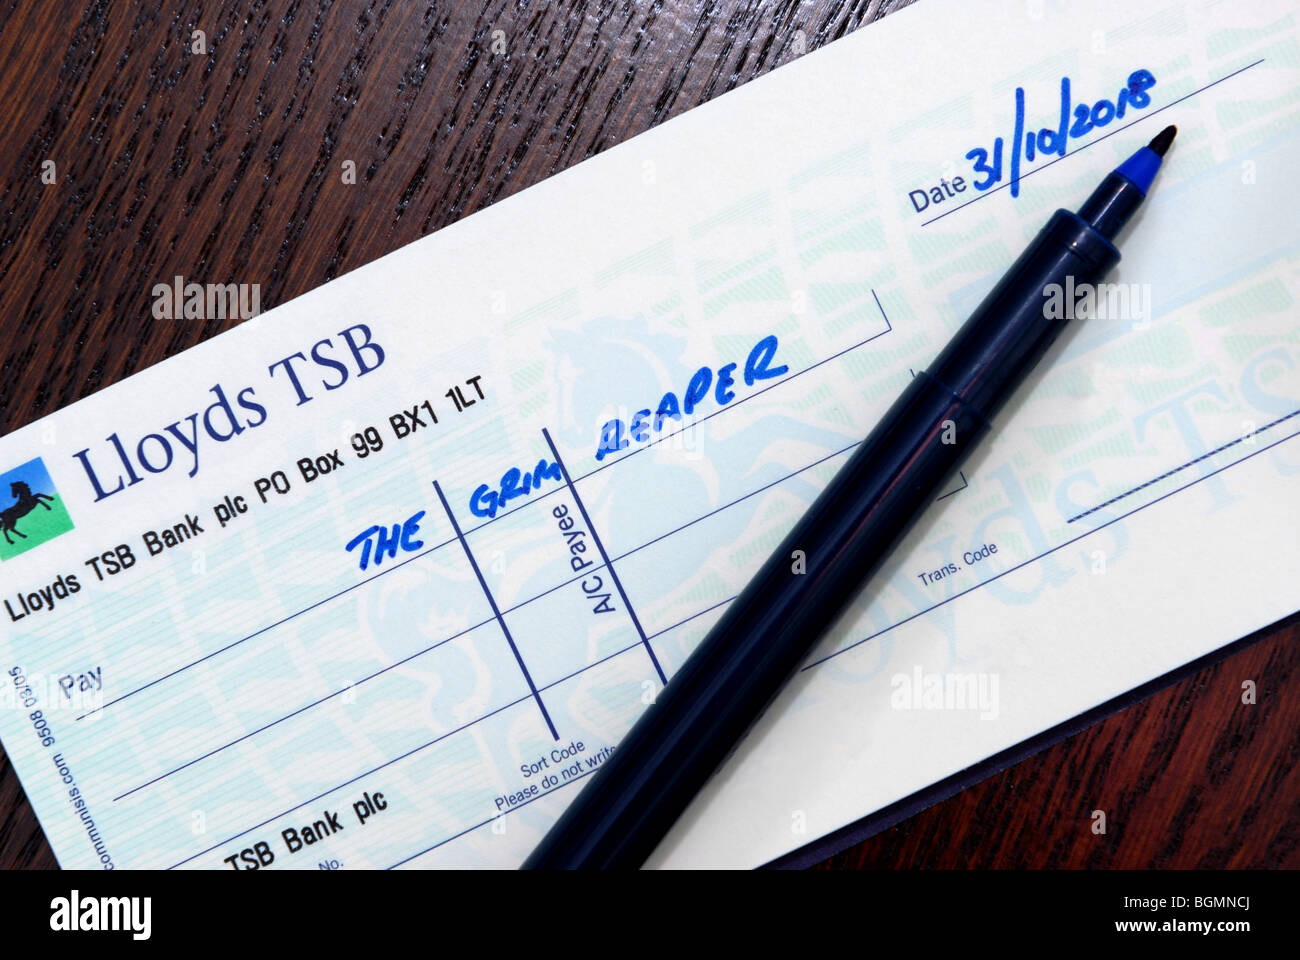 Cheque to the Grim Reaper dated 31 Oct 2018 to illustrate the potential last date for cheques as acceptable form - Stock Image